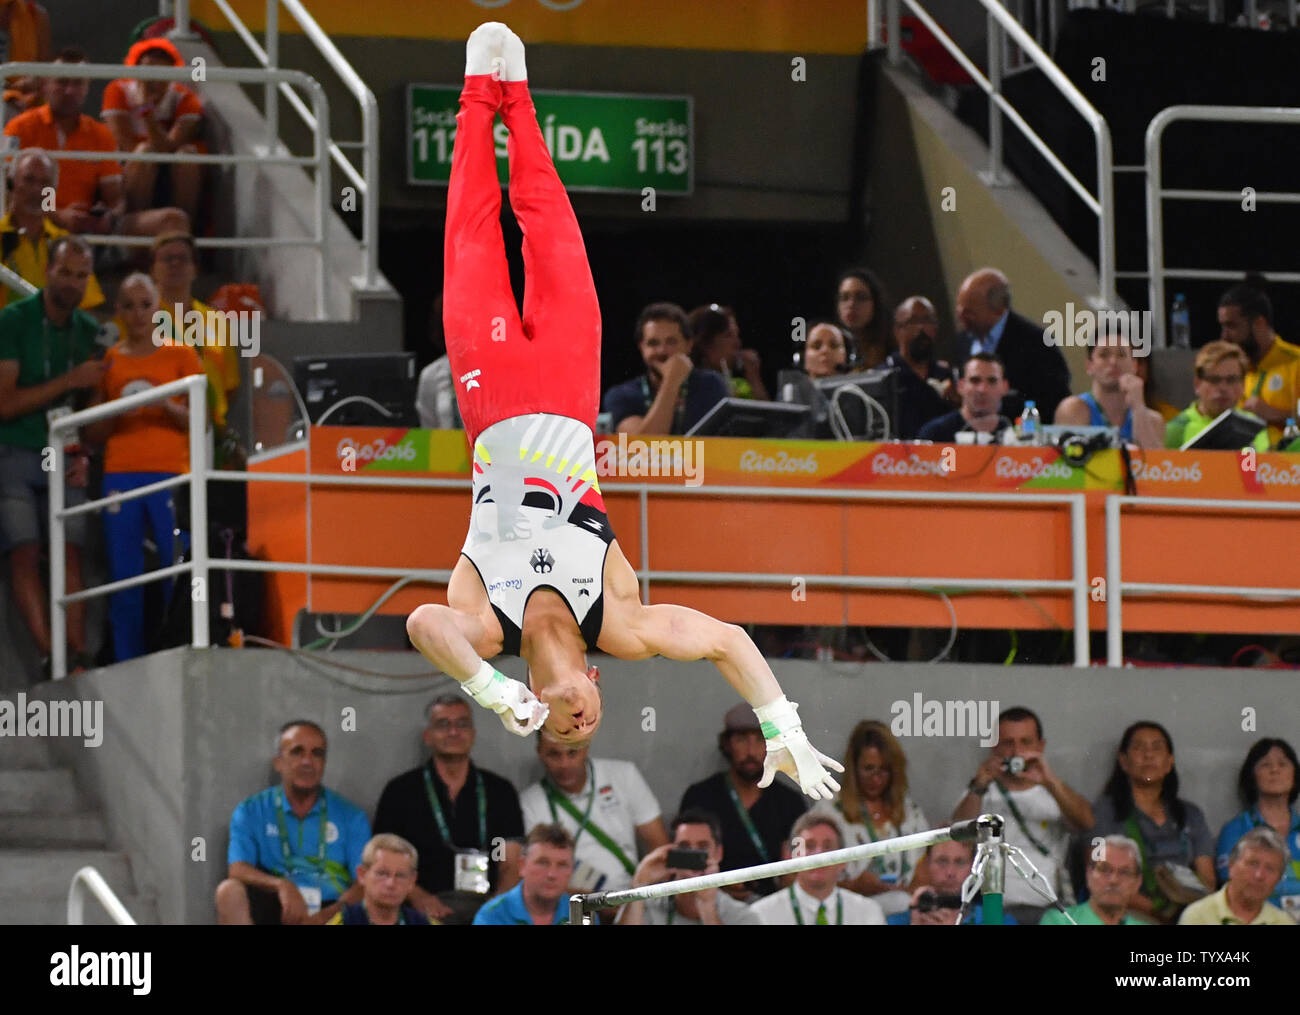 Fabian Hambuechen of Germany competes on the Horizontal Bar Final at the Olympic Arena of the 2016 Rio Summer Olympics in Rio de Janeiro, Brazil, August 16, 2016.          Photo by Kevin Dietsch/UPI - Stock Image